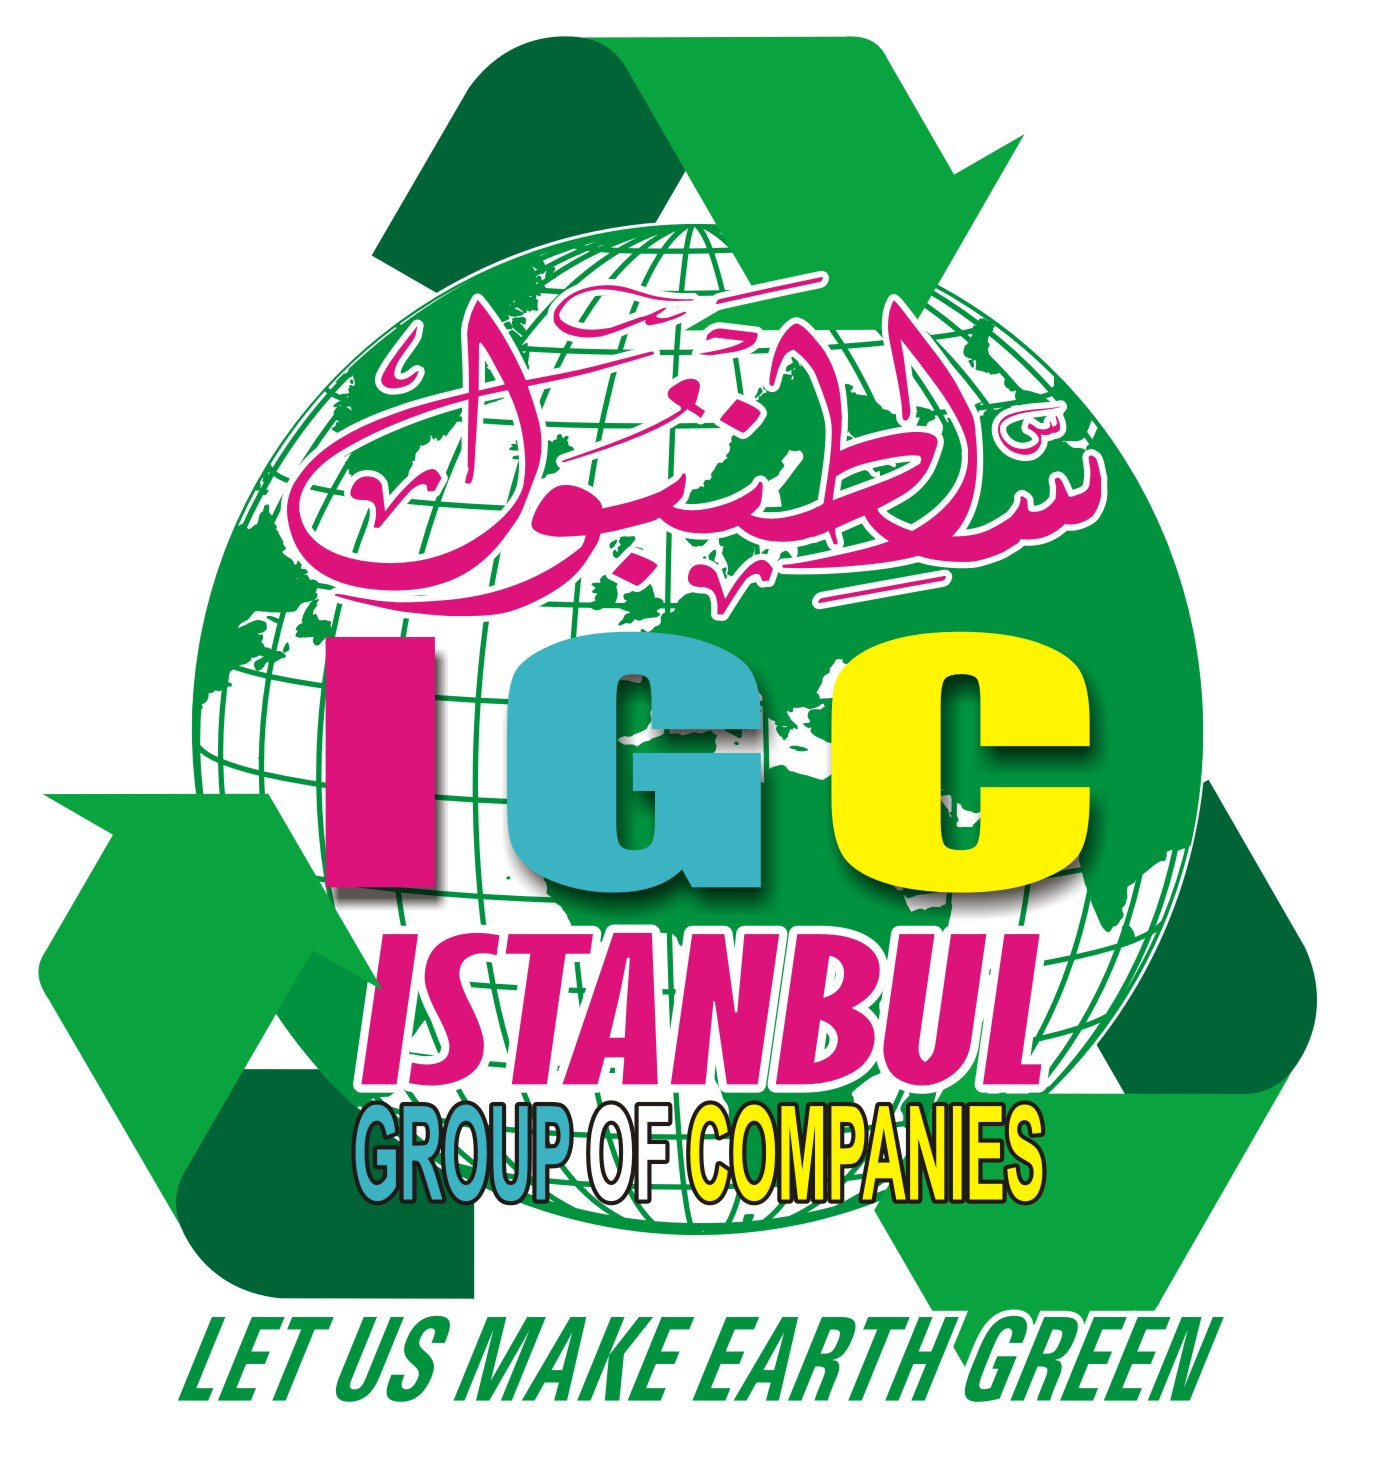 Istanbul Group of Companies